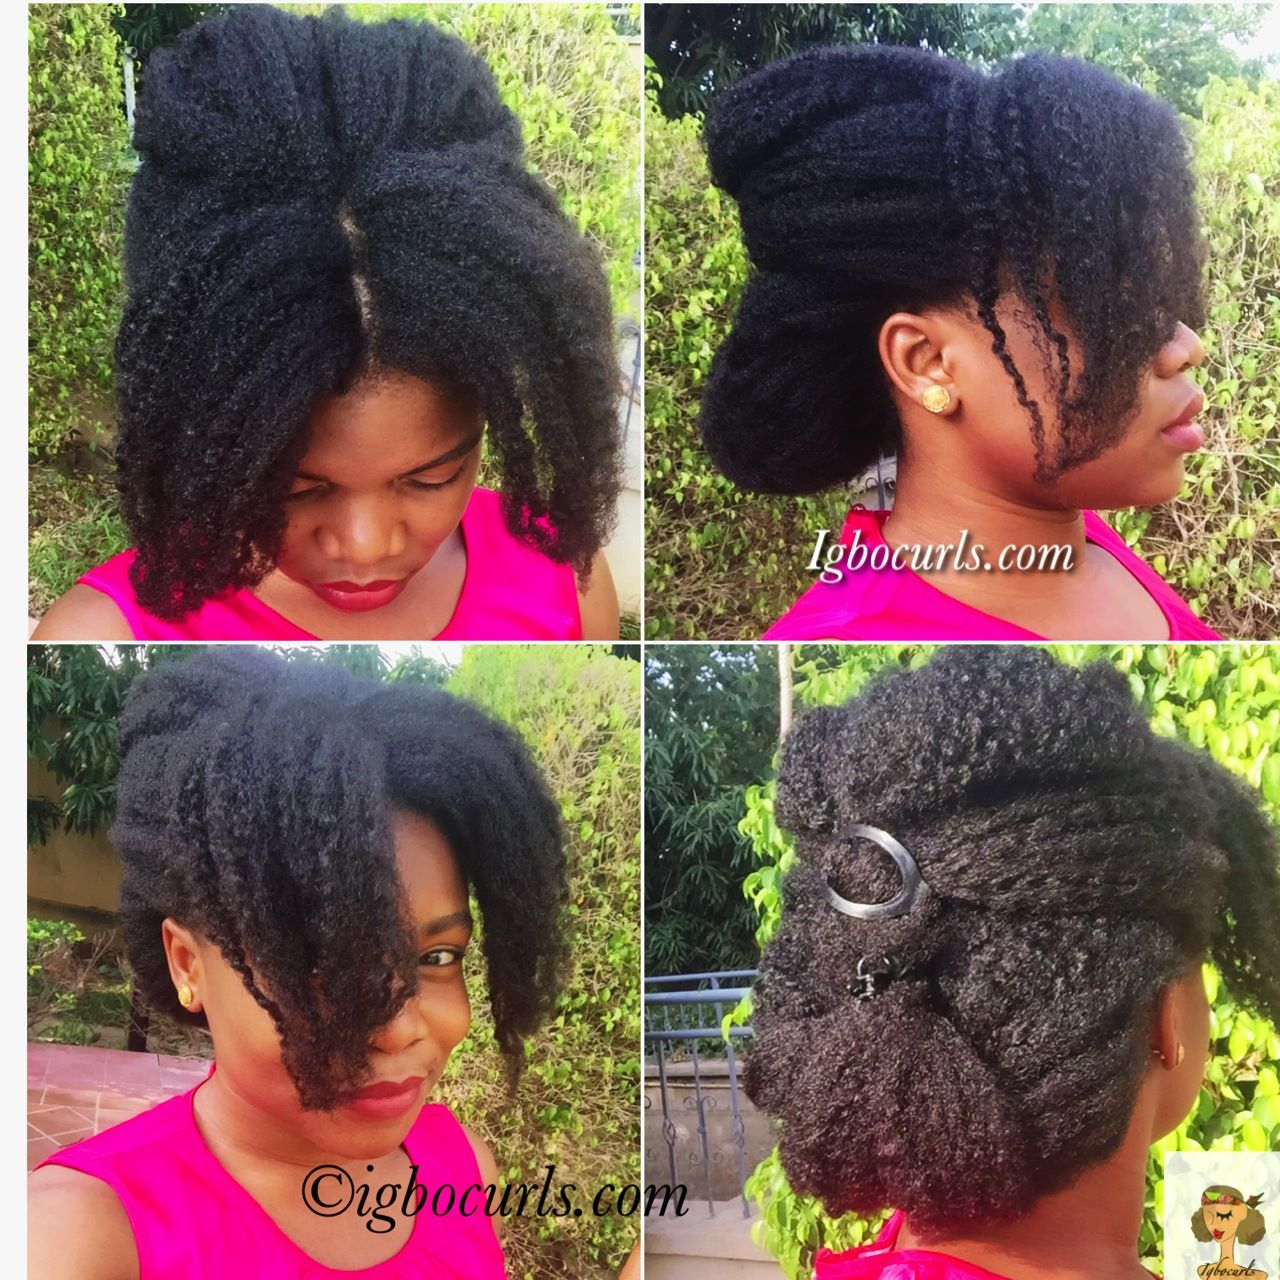 Igbocurls- Bouffant Hairstyle